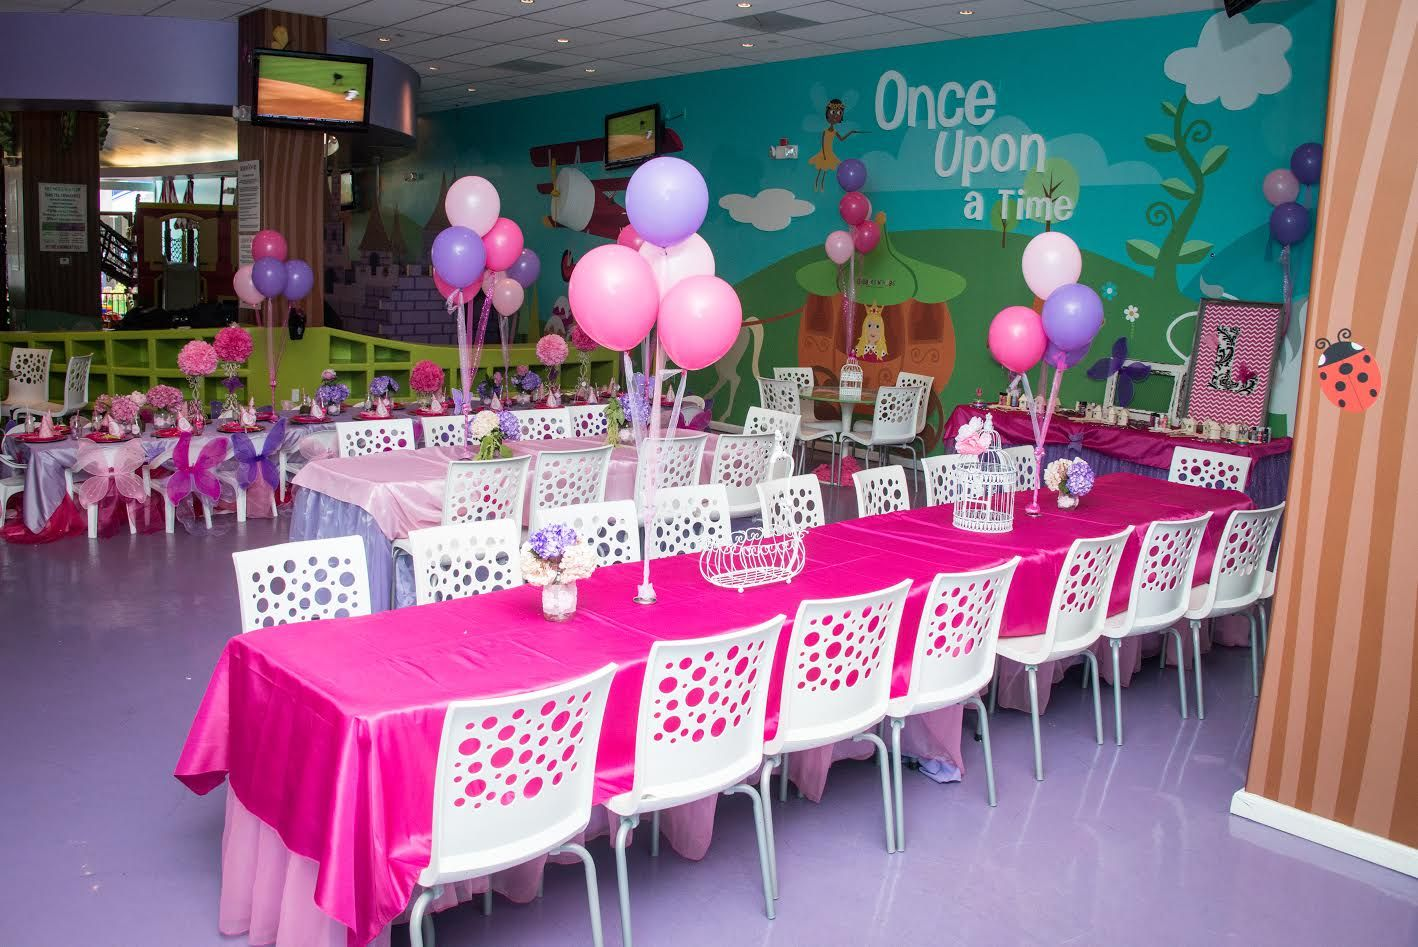 Kids Birthday Party Places Near Me Birthday Party Places Party Places For Kids Birthday Parties